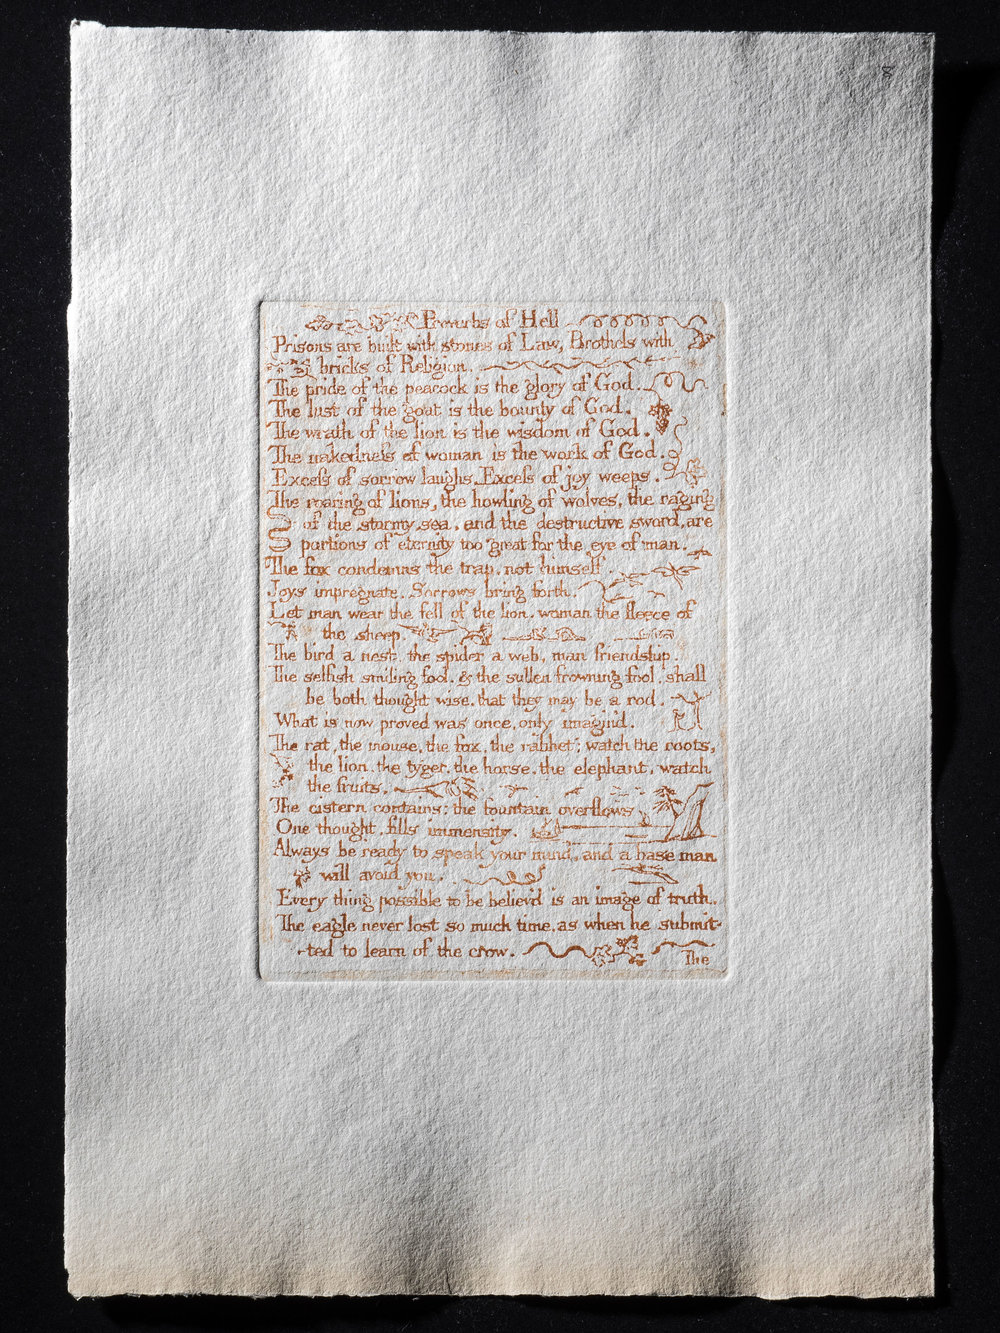 8. Proverbs of Hell, 156 x 107 mm